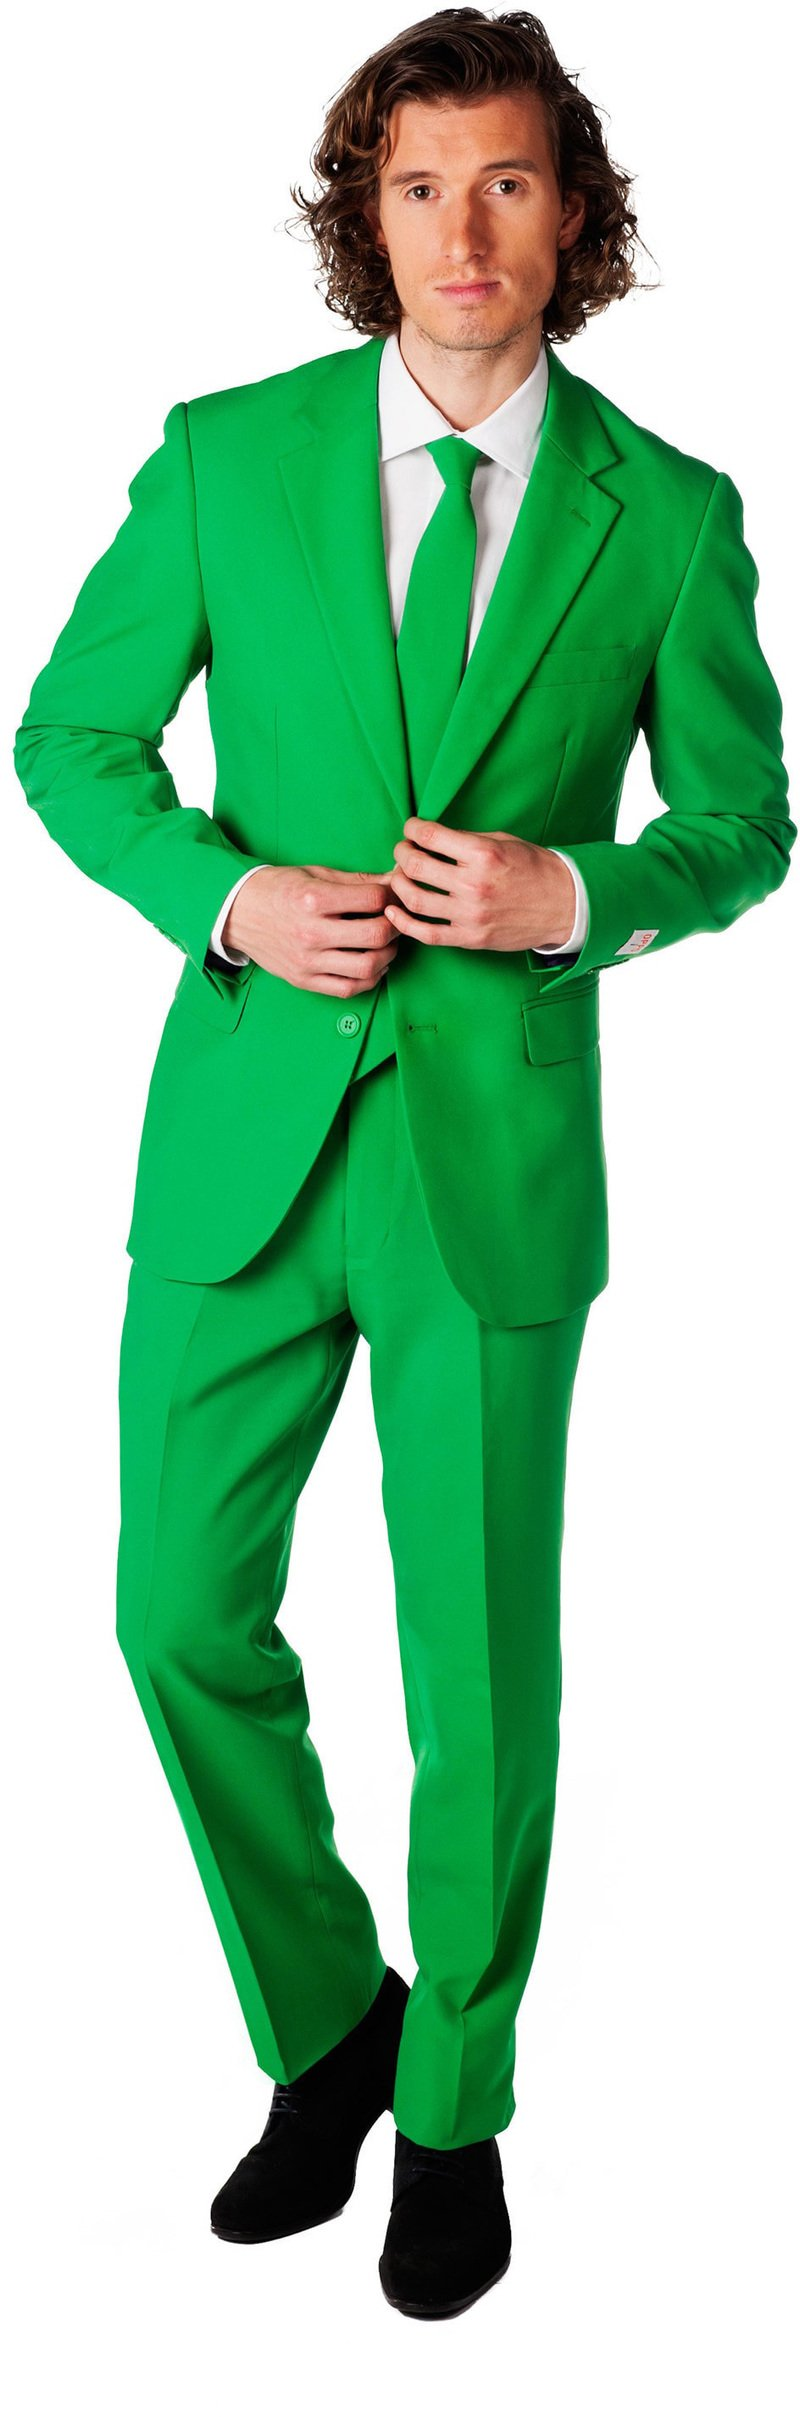 OppoSuits Evergeen Suit photo 0